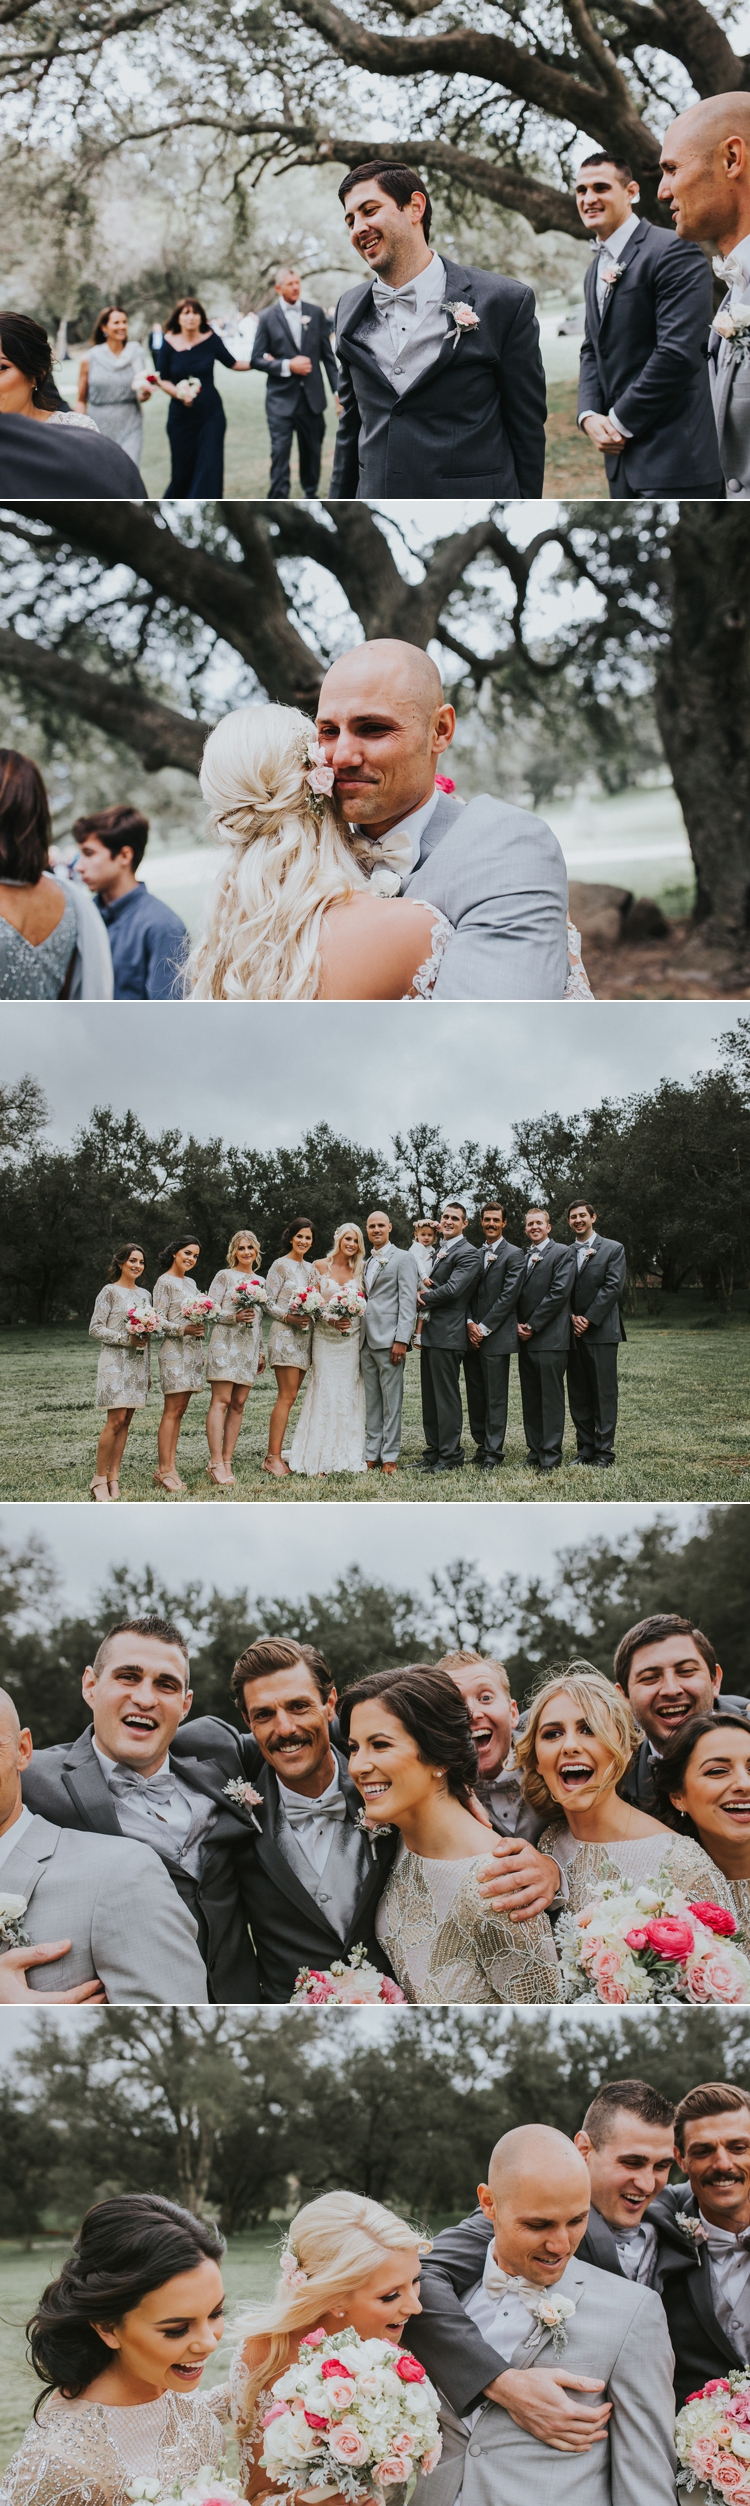 wedding at milagro farms winery